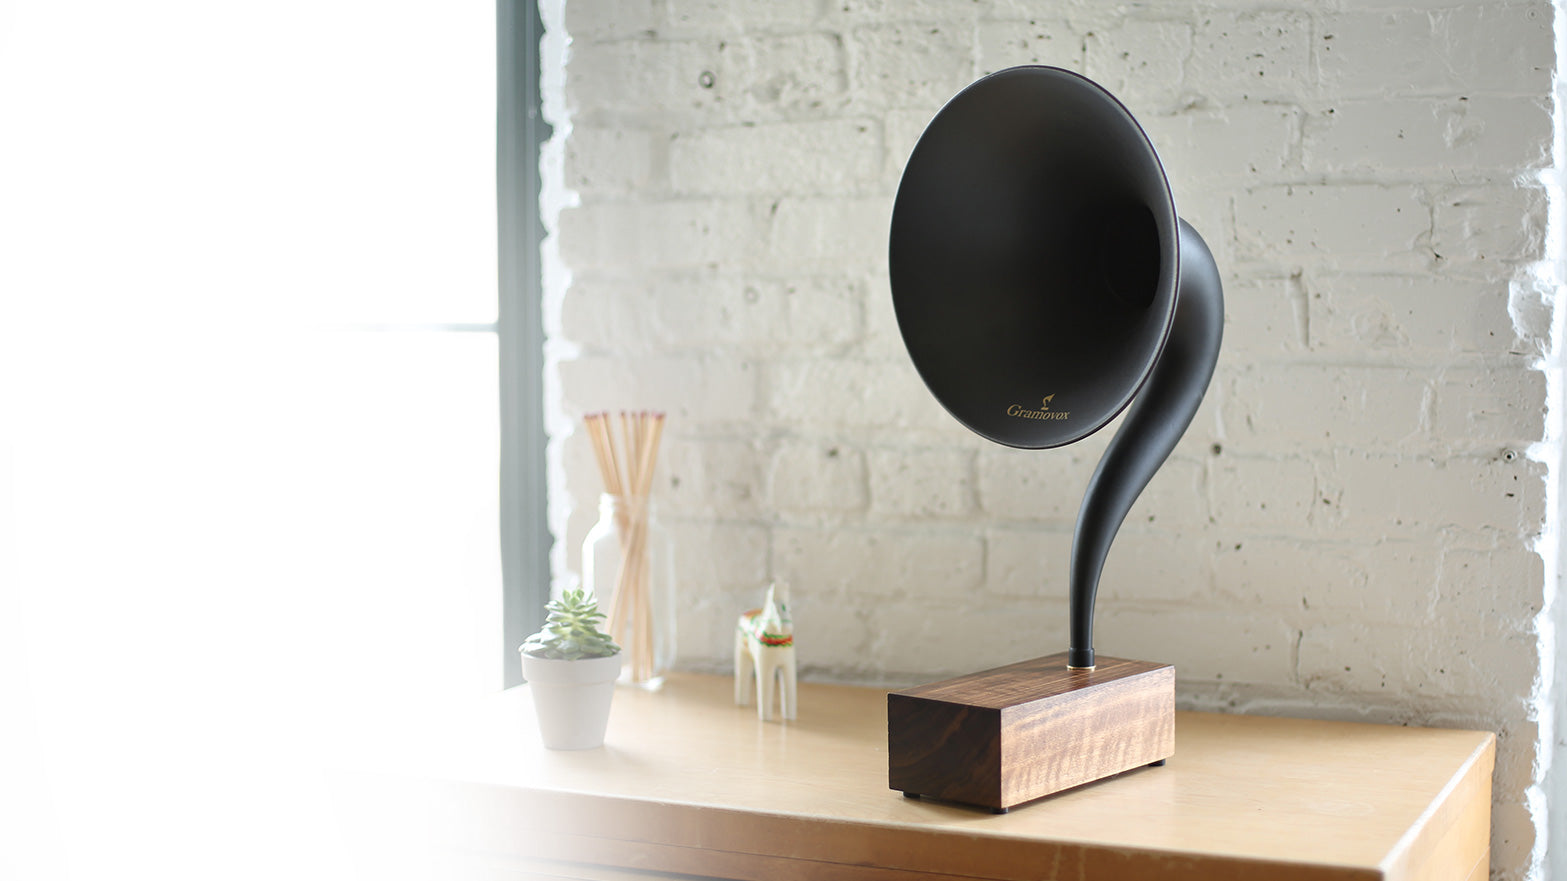 Bluetooth Gramophone 2.0 – Vintage Wireless Speaker, iPhone/Android Compatible | Header – Black Steel Horn, Wood-Base, Daylight